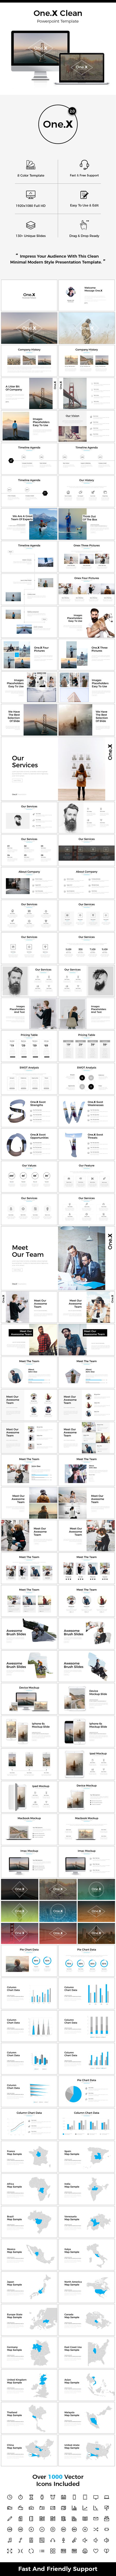 One.X 2.0 Clean Powerpoint Template